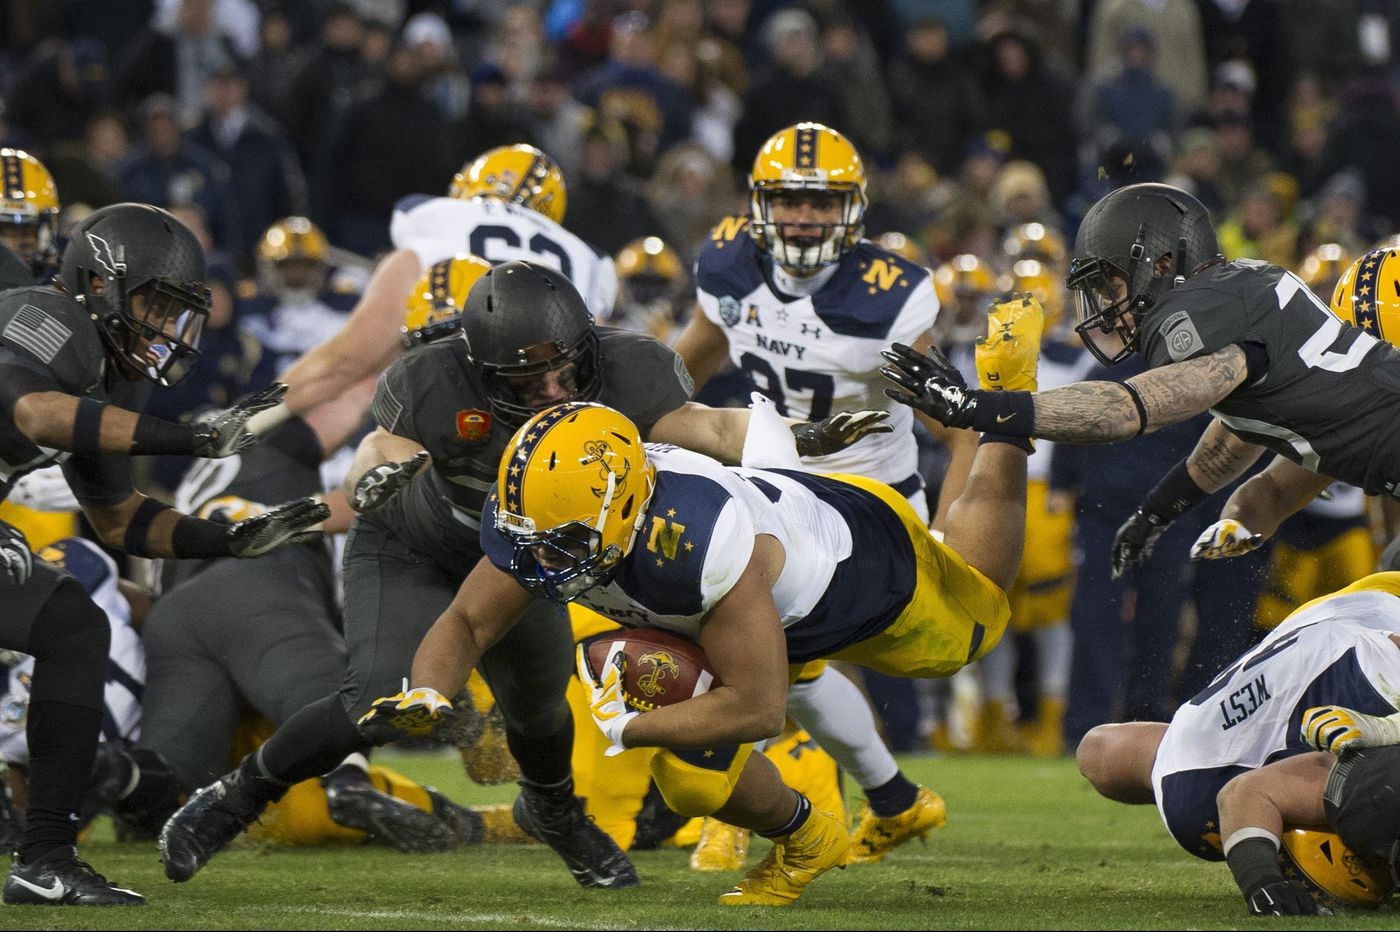 Army-Navy rivalry puts two coaches' friendship to the test